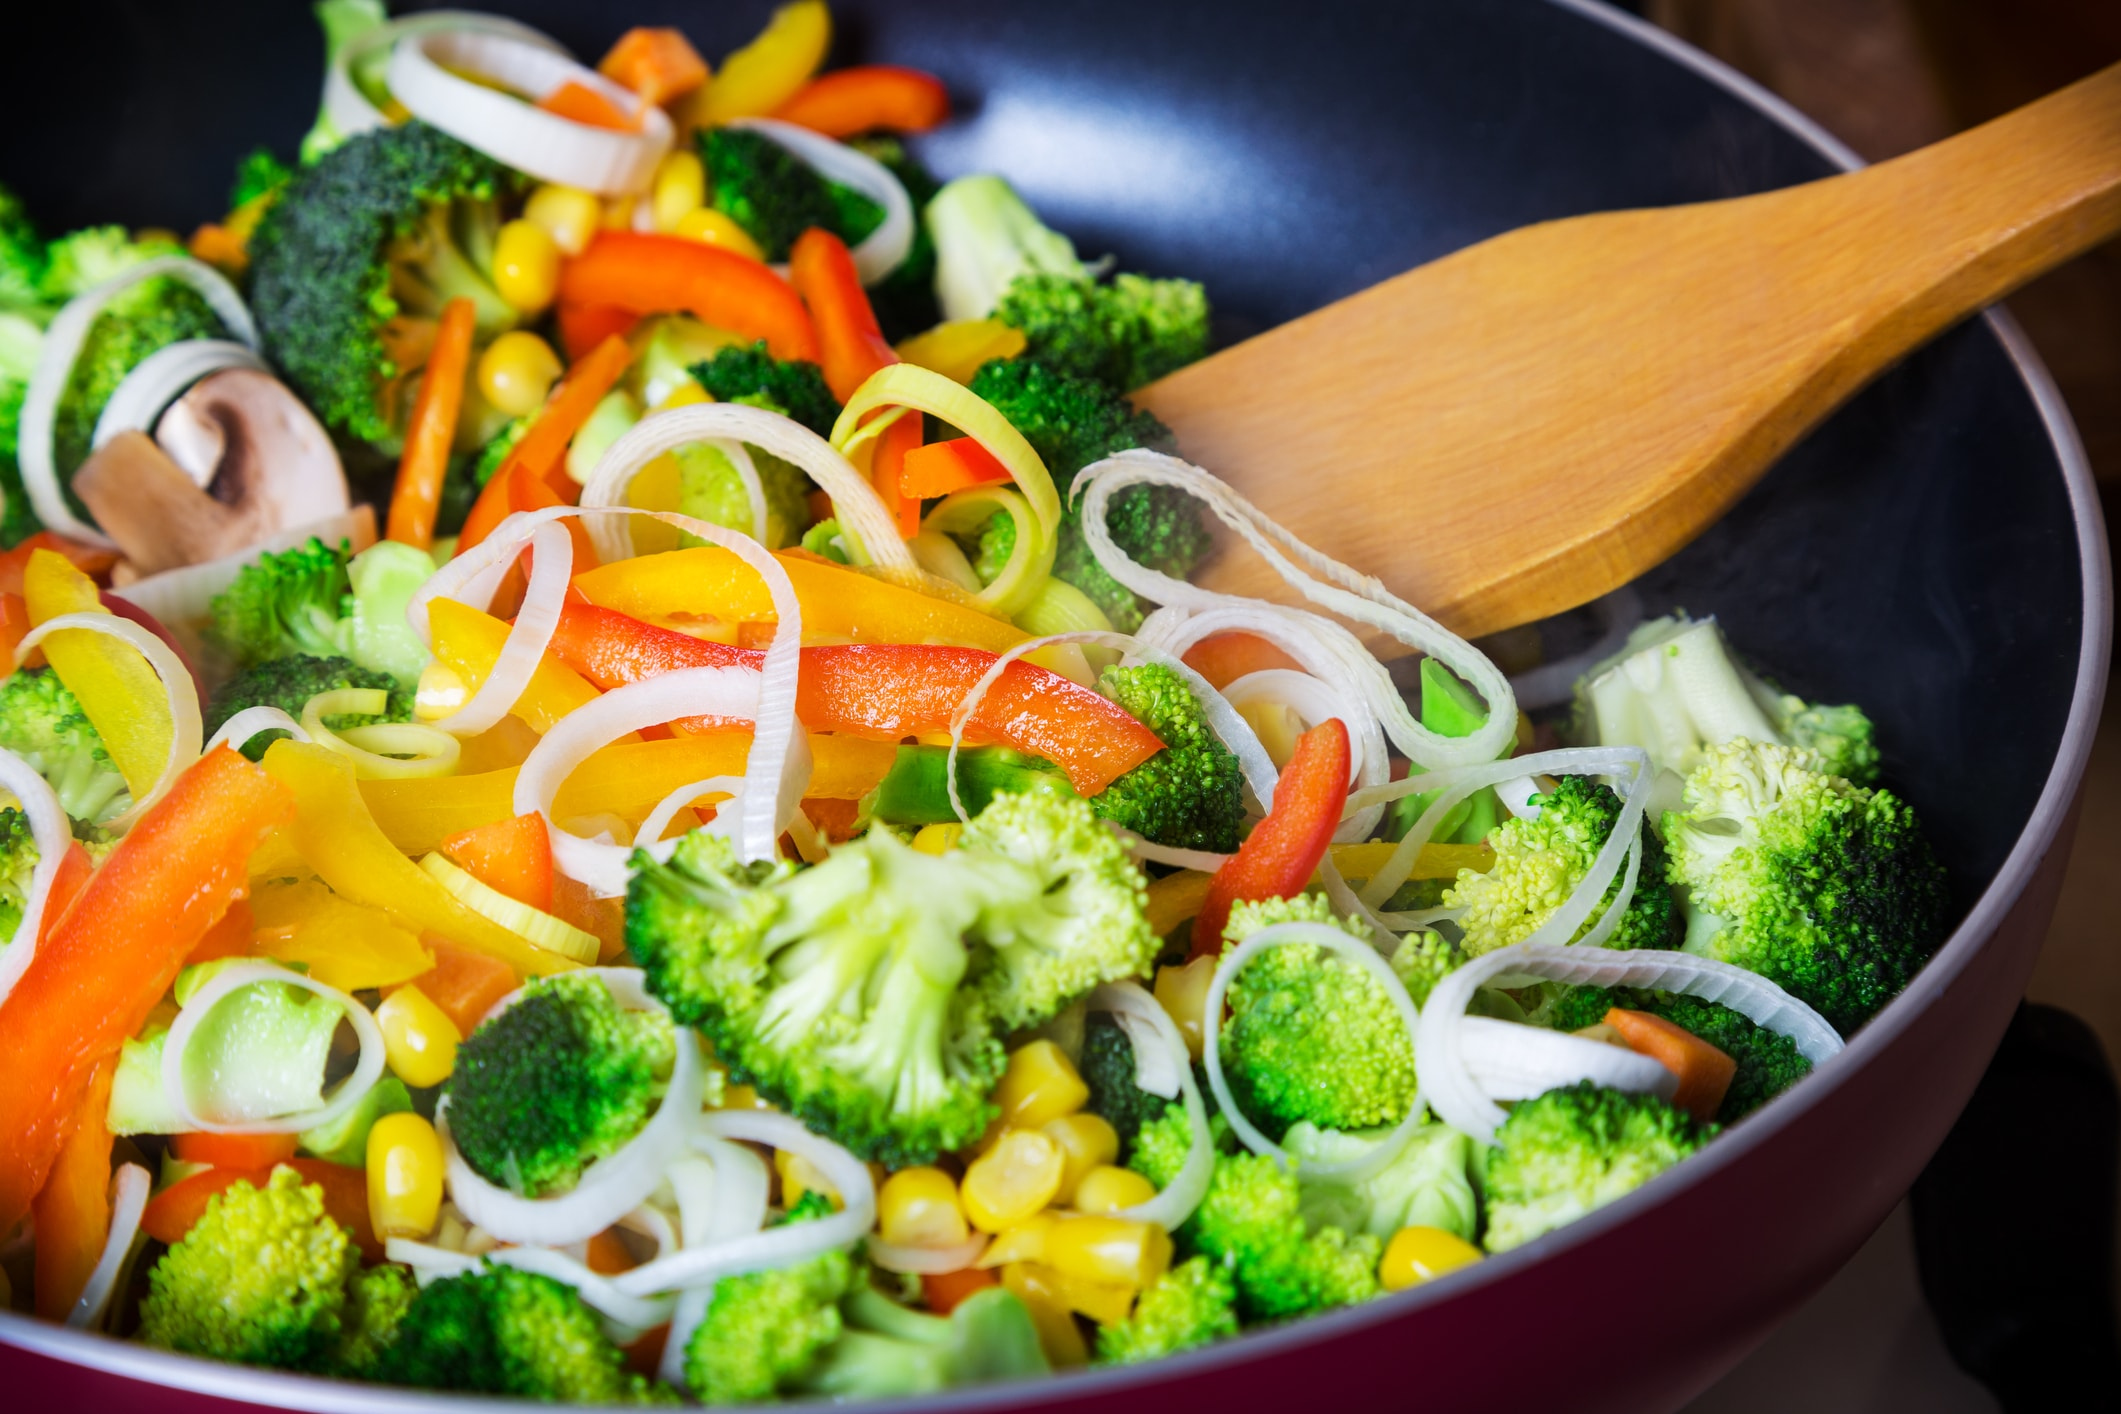 Healthy Cooking and Meal Tips for Your Family - Ffpeds.com